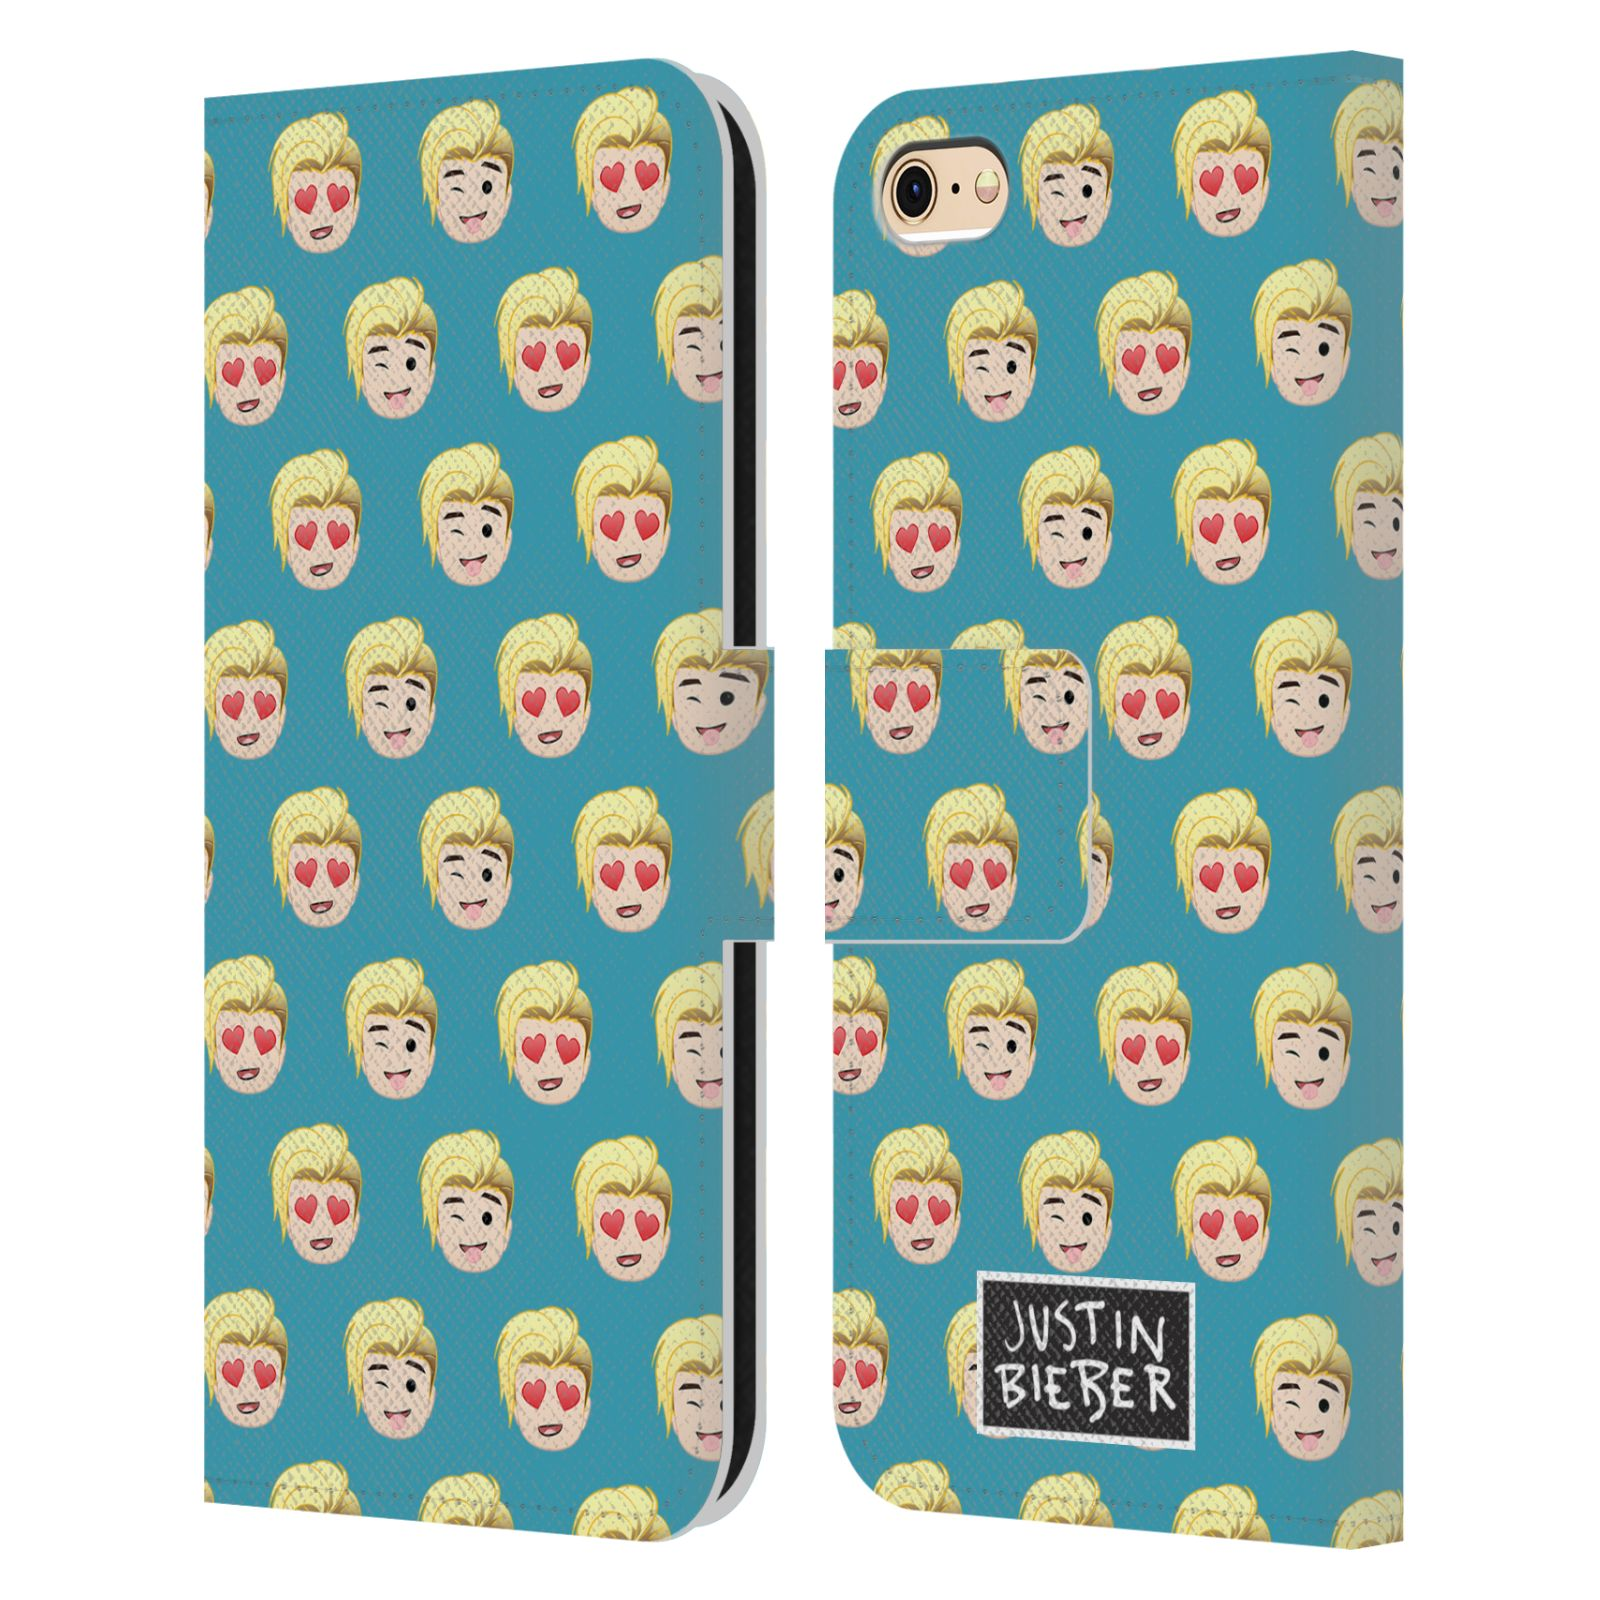 OFFICIAL-JUSTIN-BIEBER-JUSTMOJIS-LEATHER-BOOK-CASE-FOR-APPLE-iPHONE-PHONES